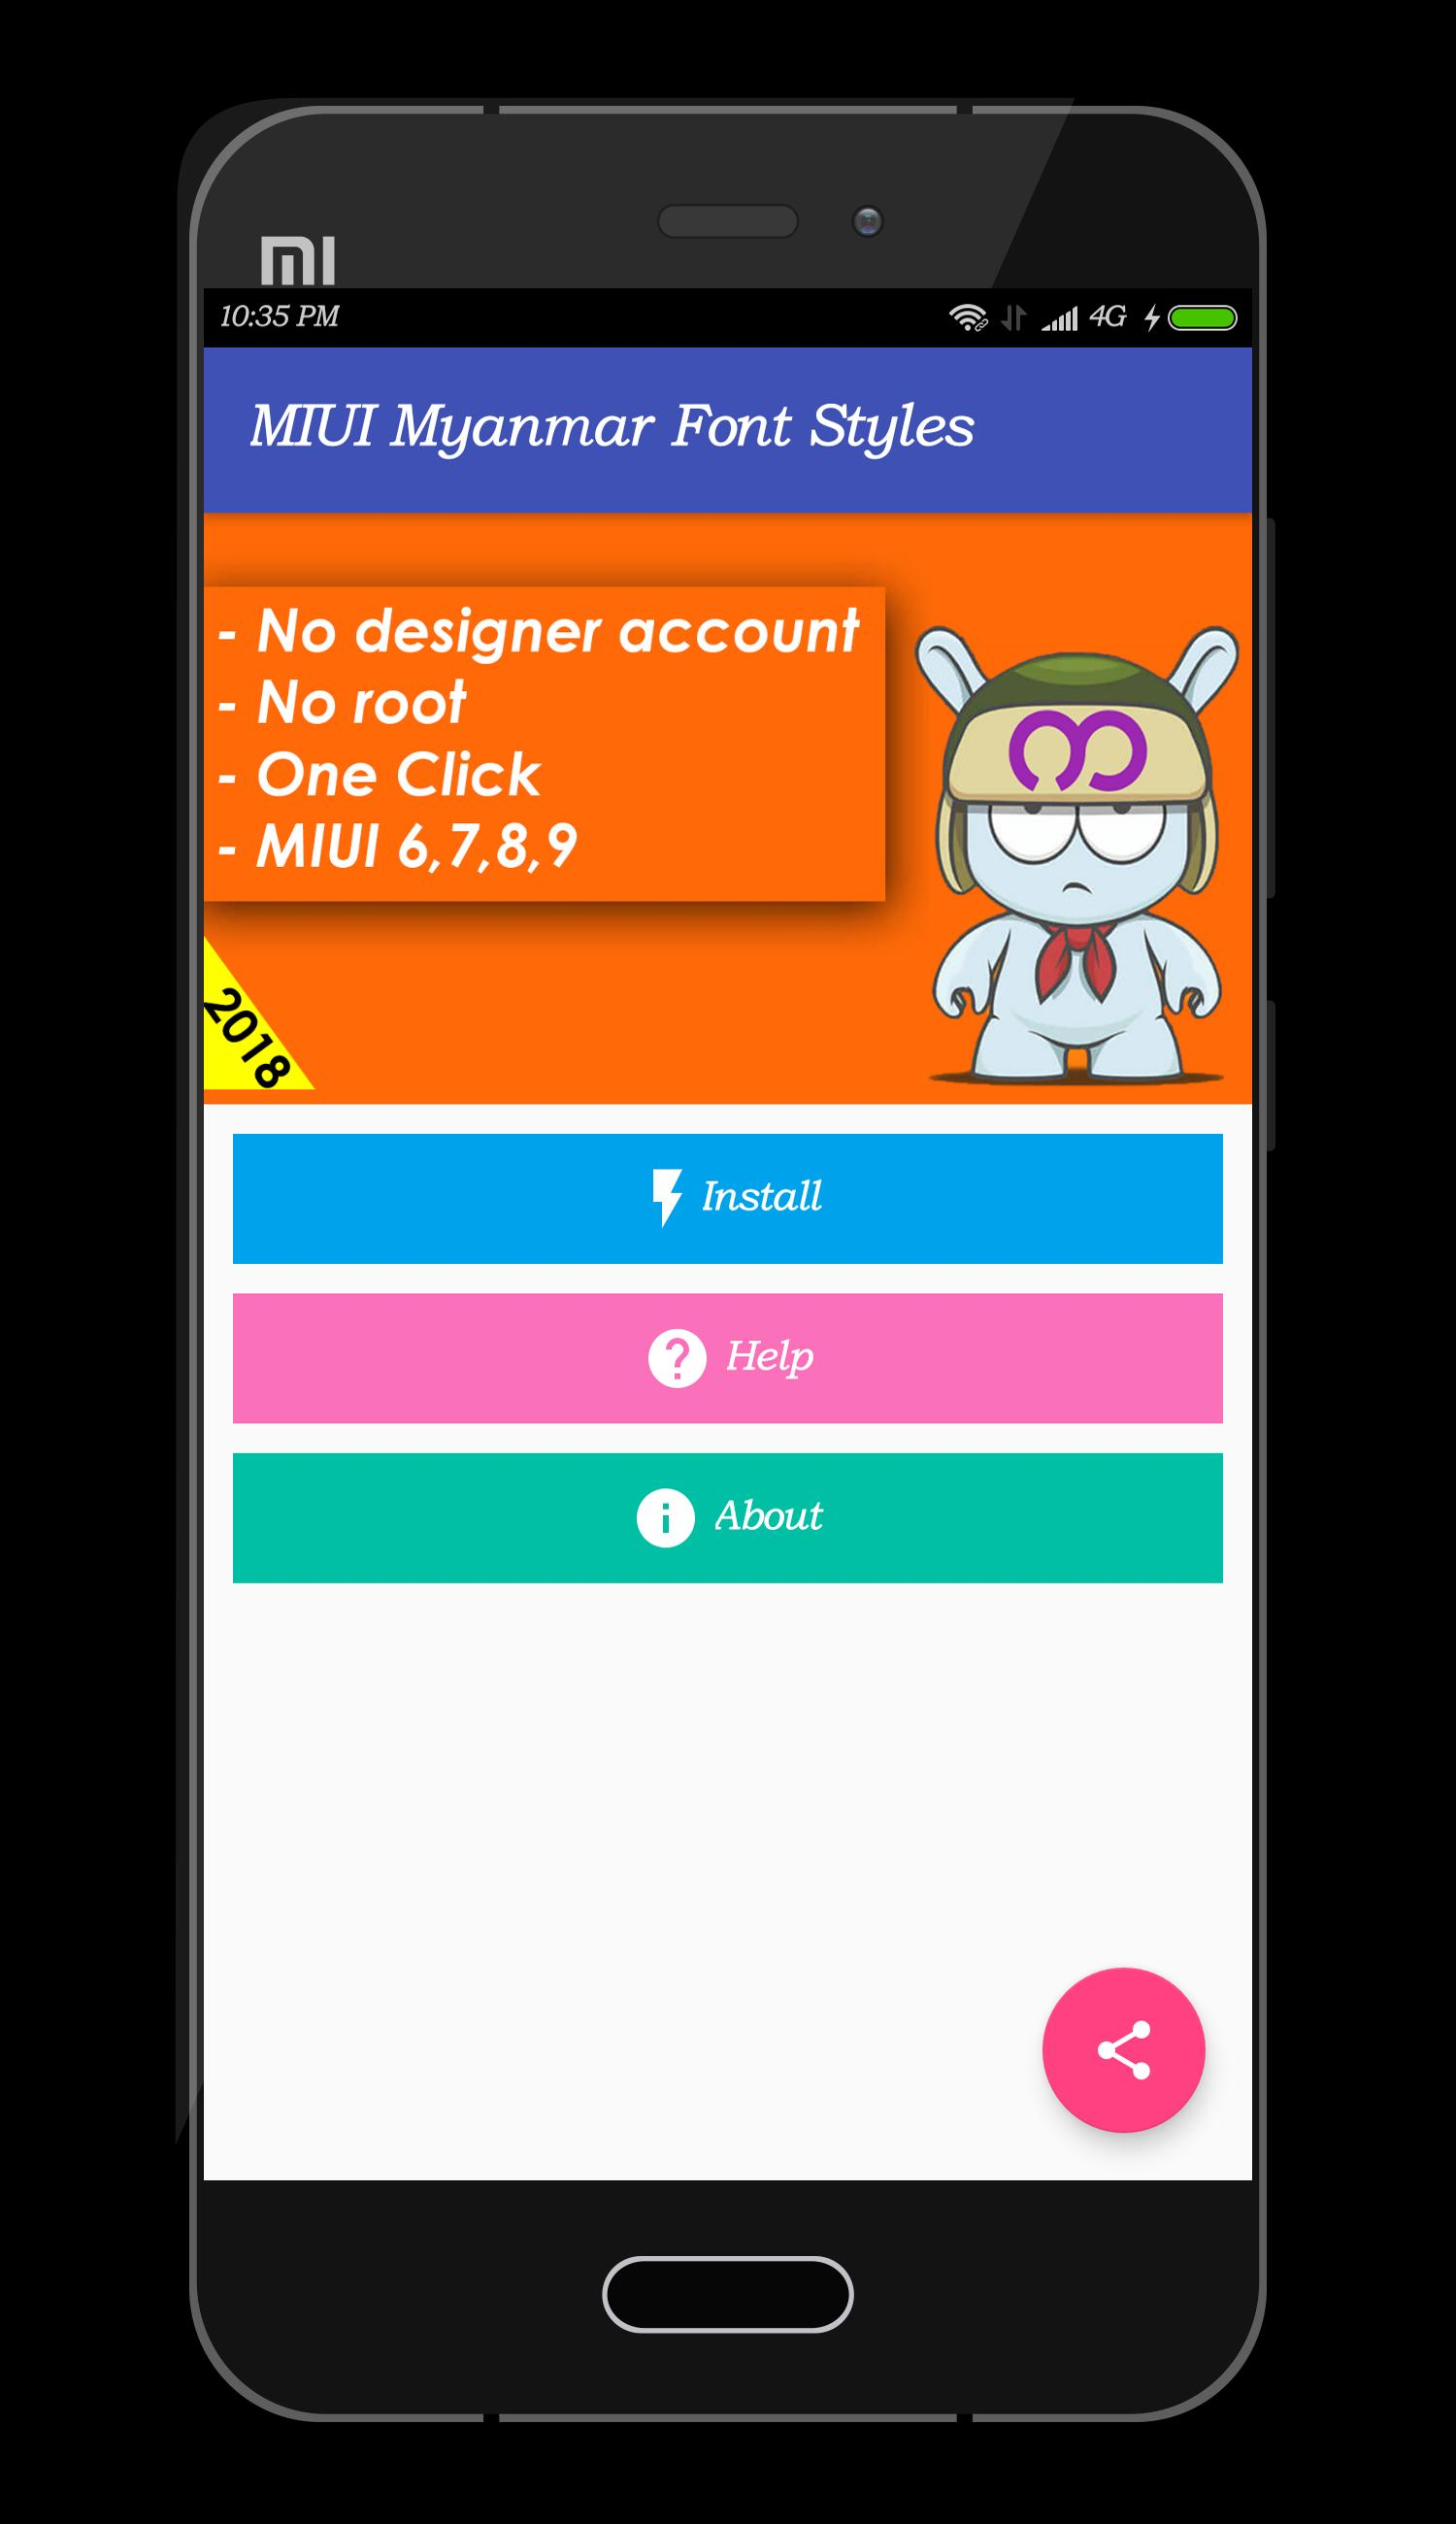 Mi Myanmar Font Styles for Android - APK Download